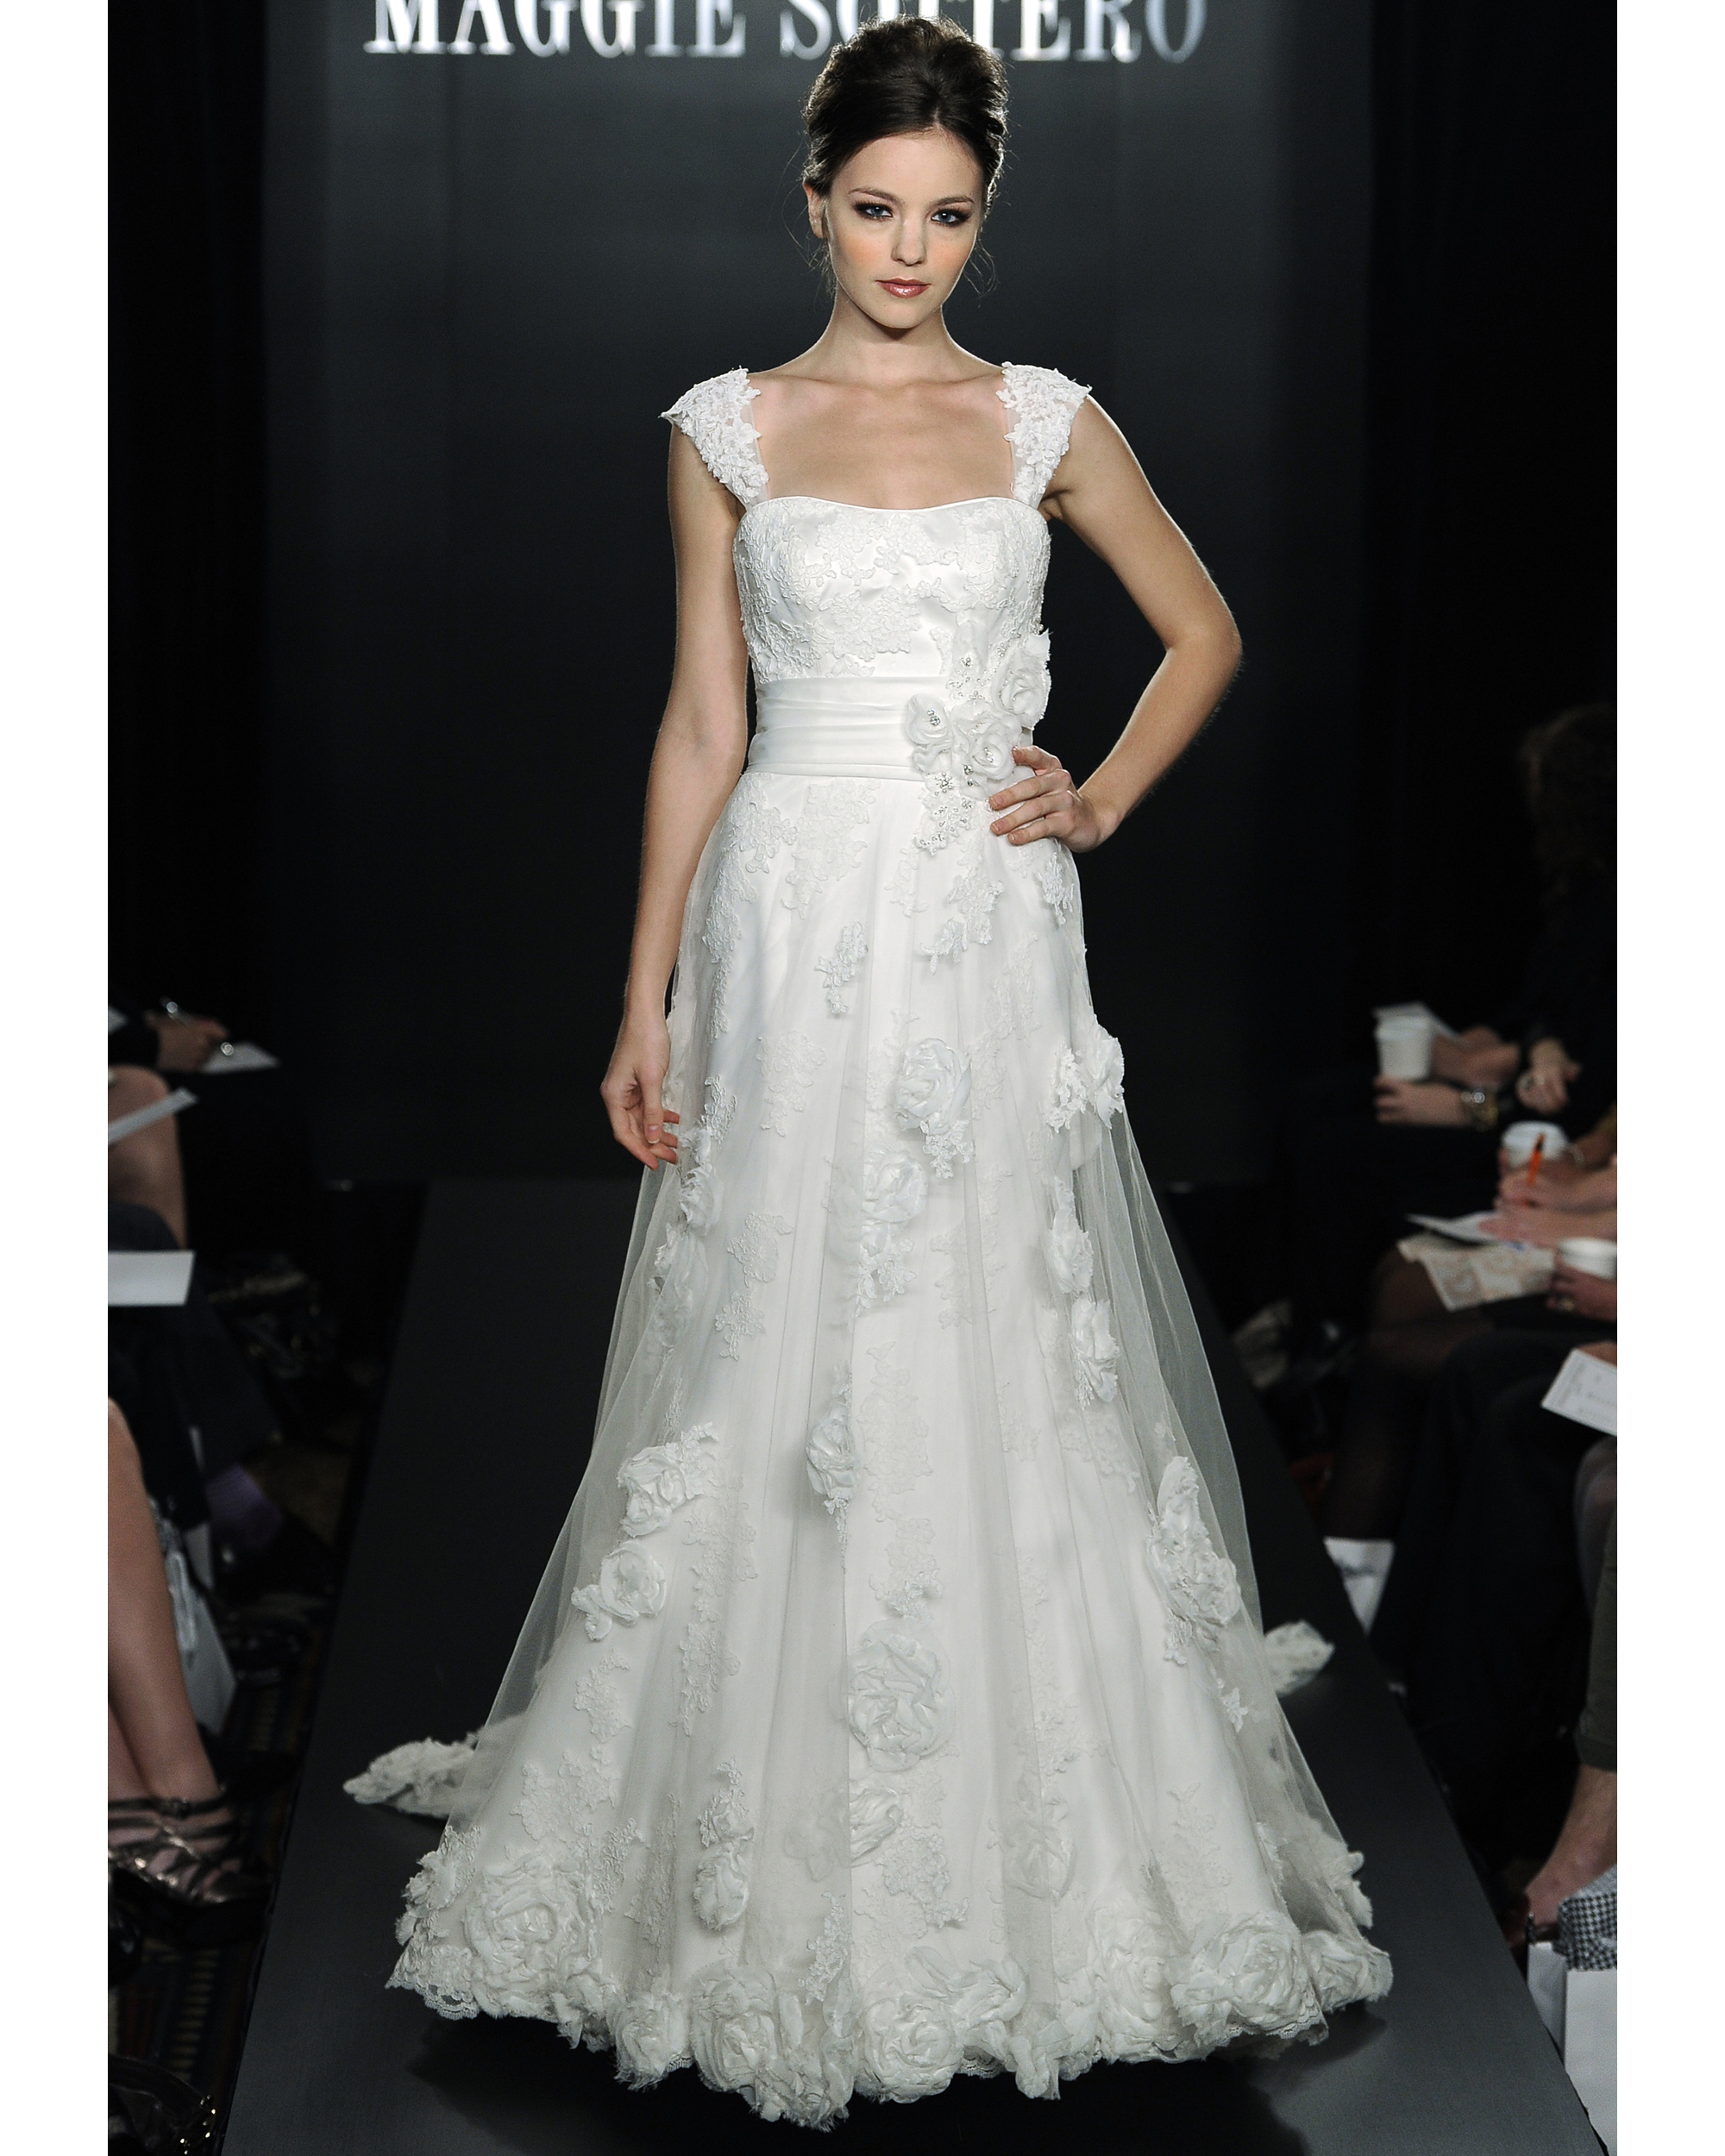 maggie-sottero-fall2012-wd108109_018.jpg